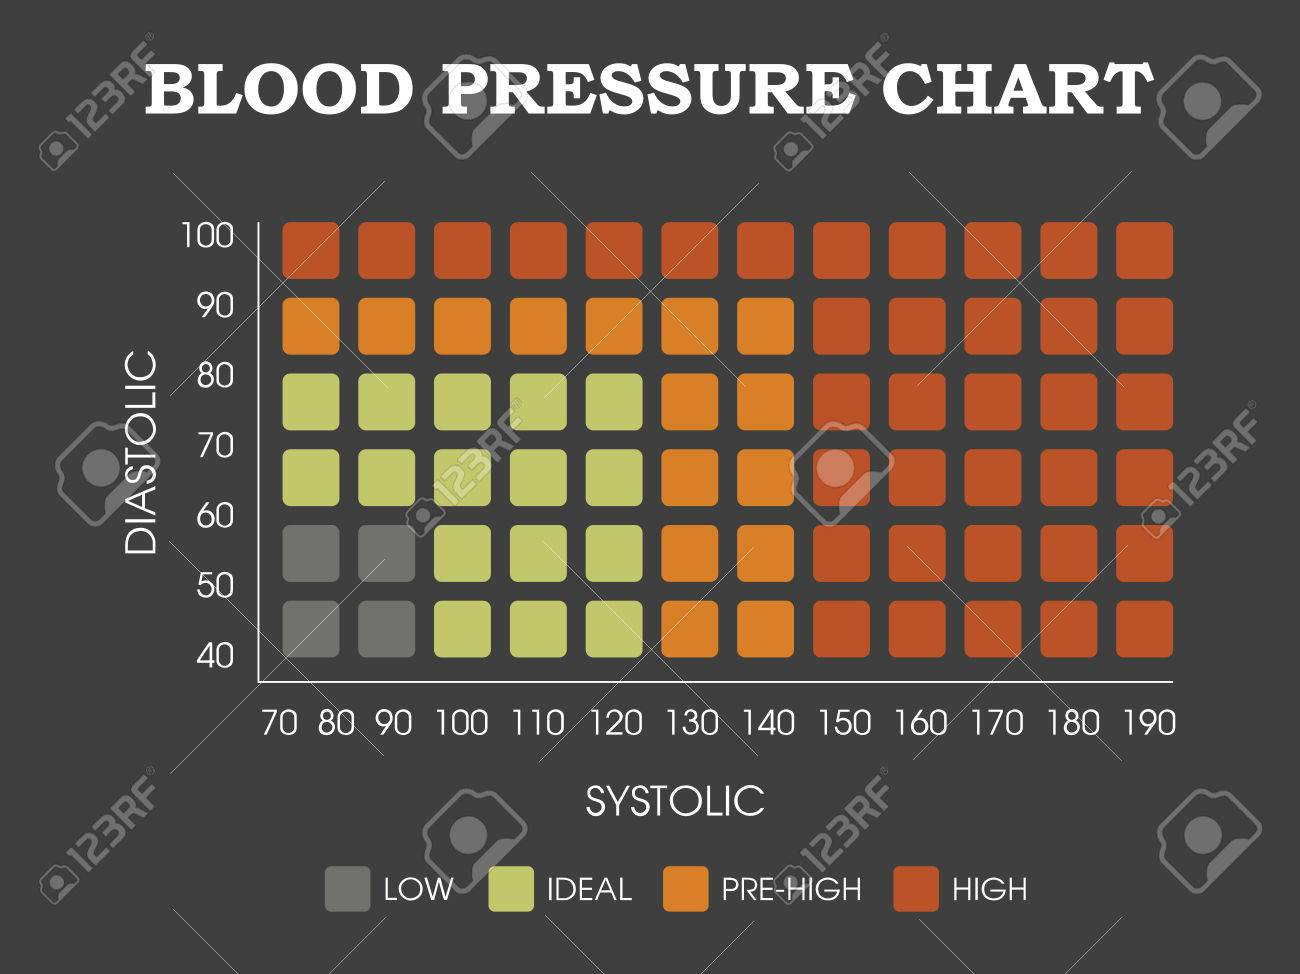 Blood pressure chart diastolic systolic measurement infographic blood pressure chart diastolic systolic measurement infographic stock vector 57527437 nvjuhfo Image collections